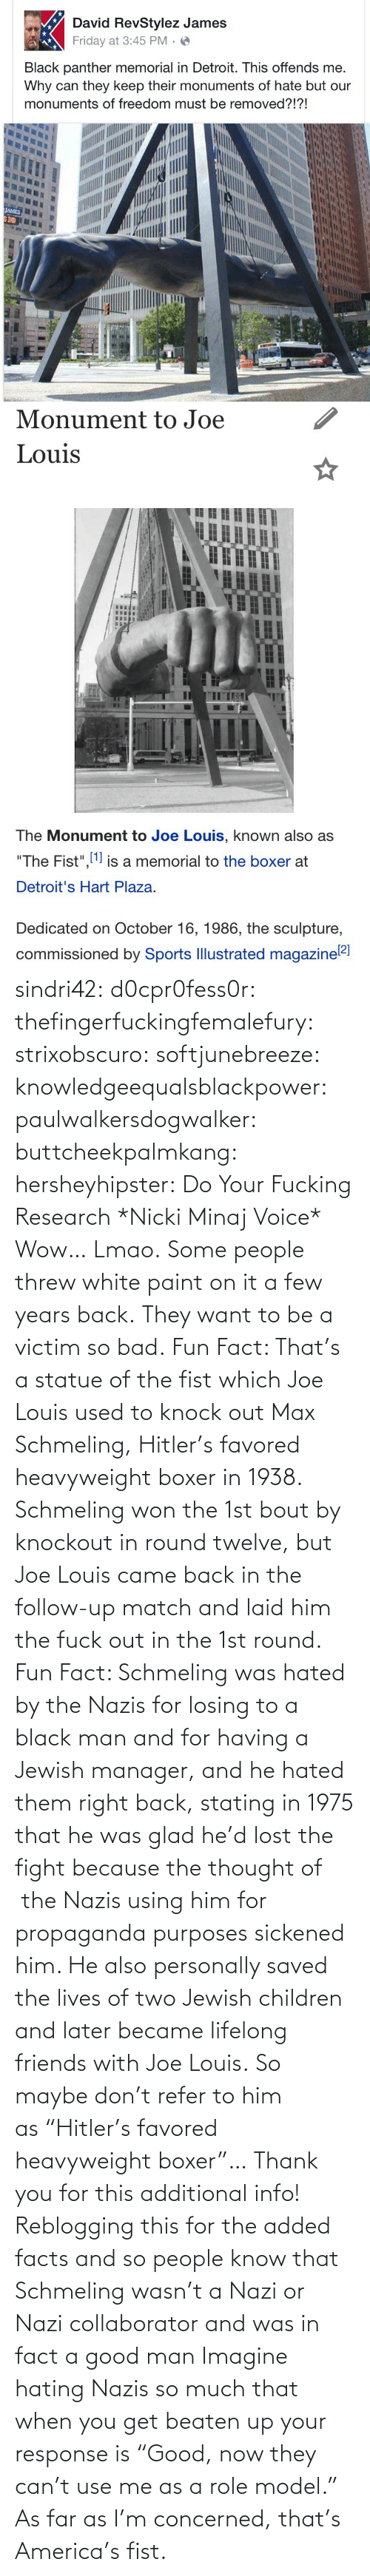 "Threw: sindri42:  d0cpr0fess0r:  thefingerfuckingfemalefury:  strixobscuro:  softjunebreeze:  knowledgeequalsblackpower:  paulwalkersdogwalker:   buttcheekpalmkang:   hersheyhipster:  Do Your Fucking Research *Nicki Minaj Voice*    Wow… Lmao.   Some people threw white paint on it a few years back.   They want to be a victim so bad.  Fun Fact: That's a statue of the fist which Joe Louis used to knock out Max Schmeling, Hitler's favored heavyweight boxer in 1938. Schmeling won the 1st bout by knockout in round twelve, but Joe Louis came back in the follow-up match and laid him the fuck out in the 1st round.  Fun Fact: Schmeling was hated by the Nazis for losing to a black man and for having a Jewish manager, and he hated them right back, stating in 1975 that he was glad he'd lost the fight because the thought of  the Nazis using him for propaganda purposes sickened him. He also personally saved the lives of two Jewish children and later became lifelong friends with Joe Louis. So maybe don't refer to him as ""Hitler's favored heavyweight boxer""…  Thank you for this additional info! Reblogging this for the added facts and so people know that Schmeling wasn't a Nazi or Nazi collaborator and was in fact a good man   Imagine hating Nazis so much that when you get beaten up your response is ""Good, now they can't use me as a role model.""  As far as I'm concerned, that's America's fist."